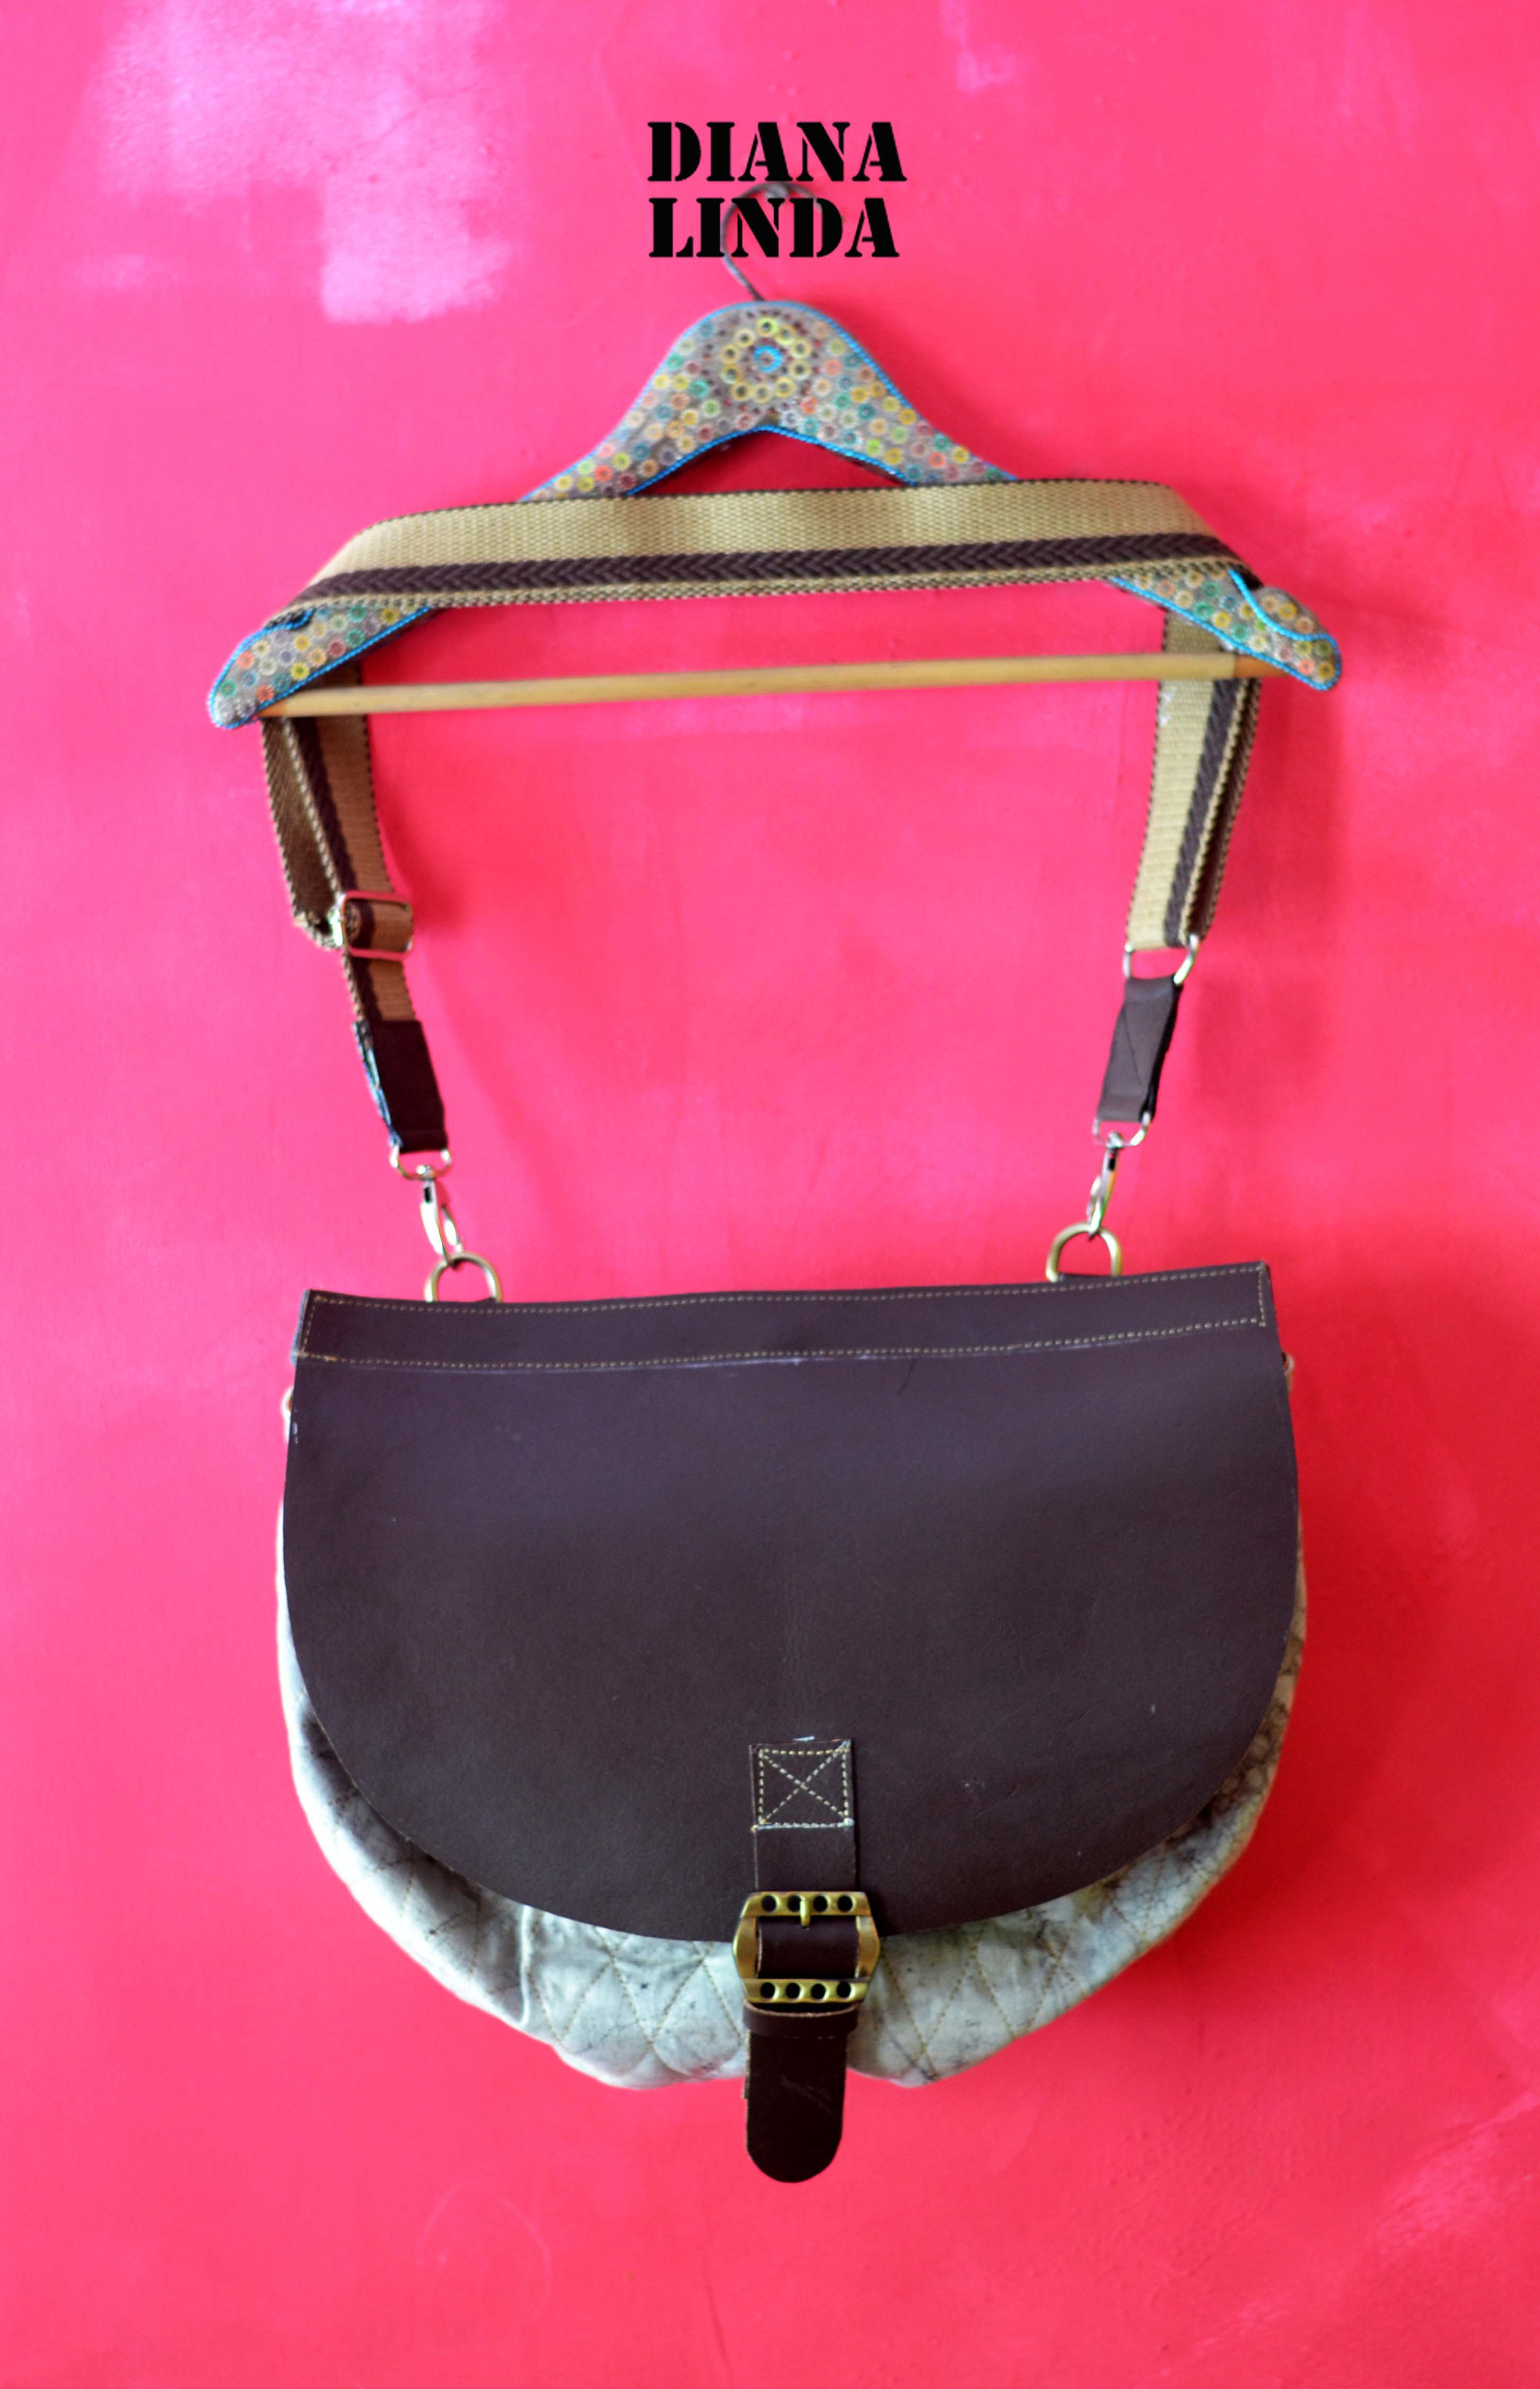 DL 700 HALF MOON MESSENGER BAG